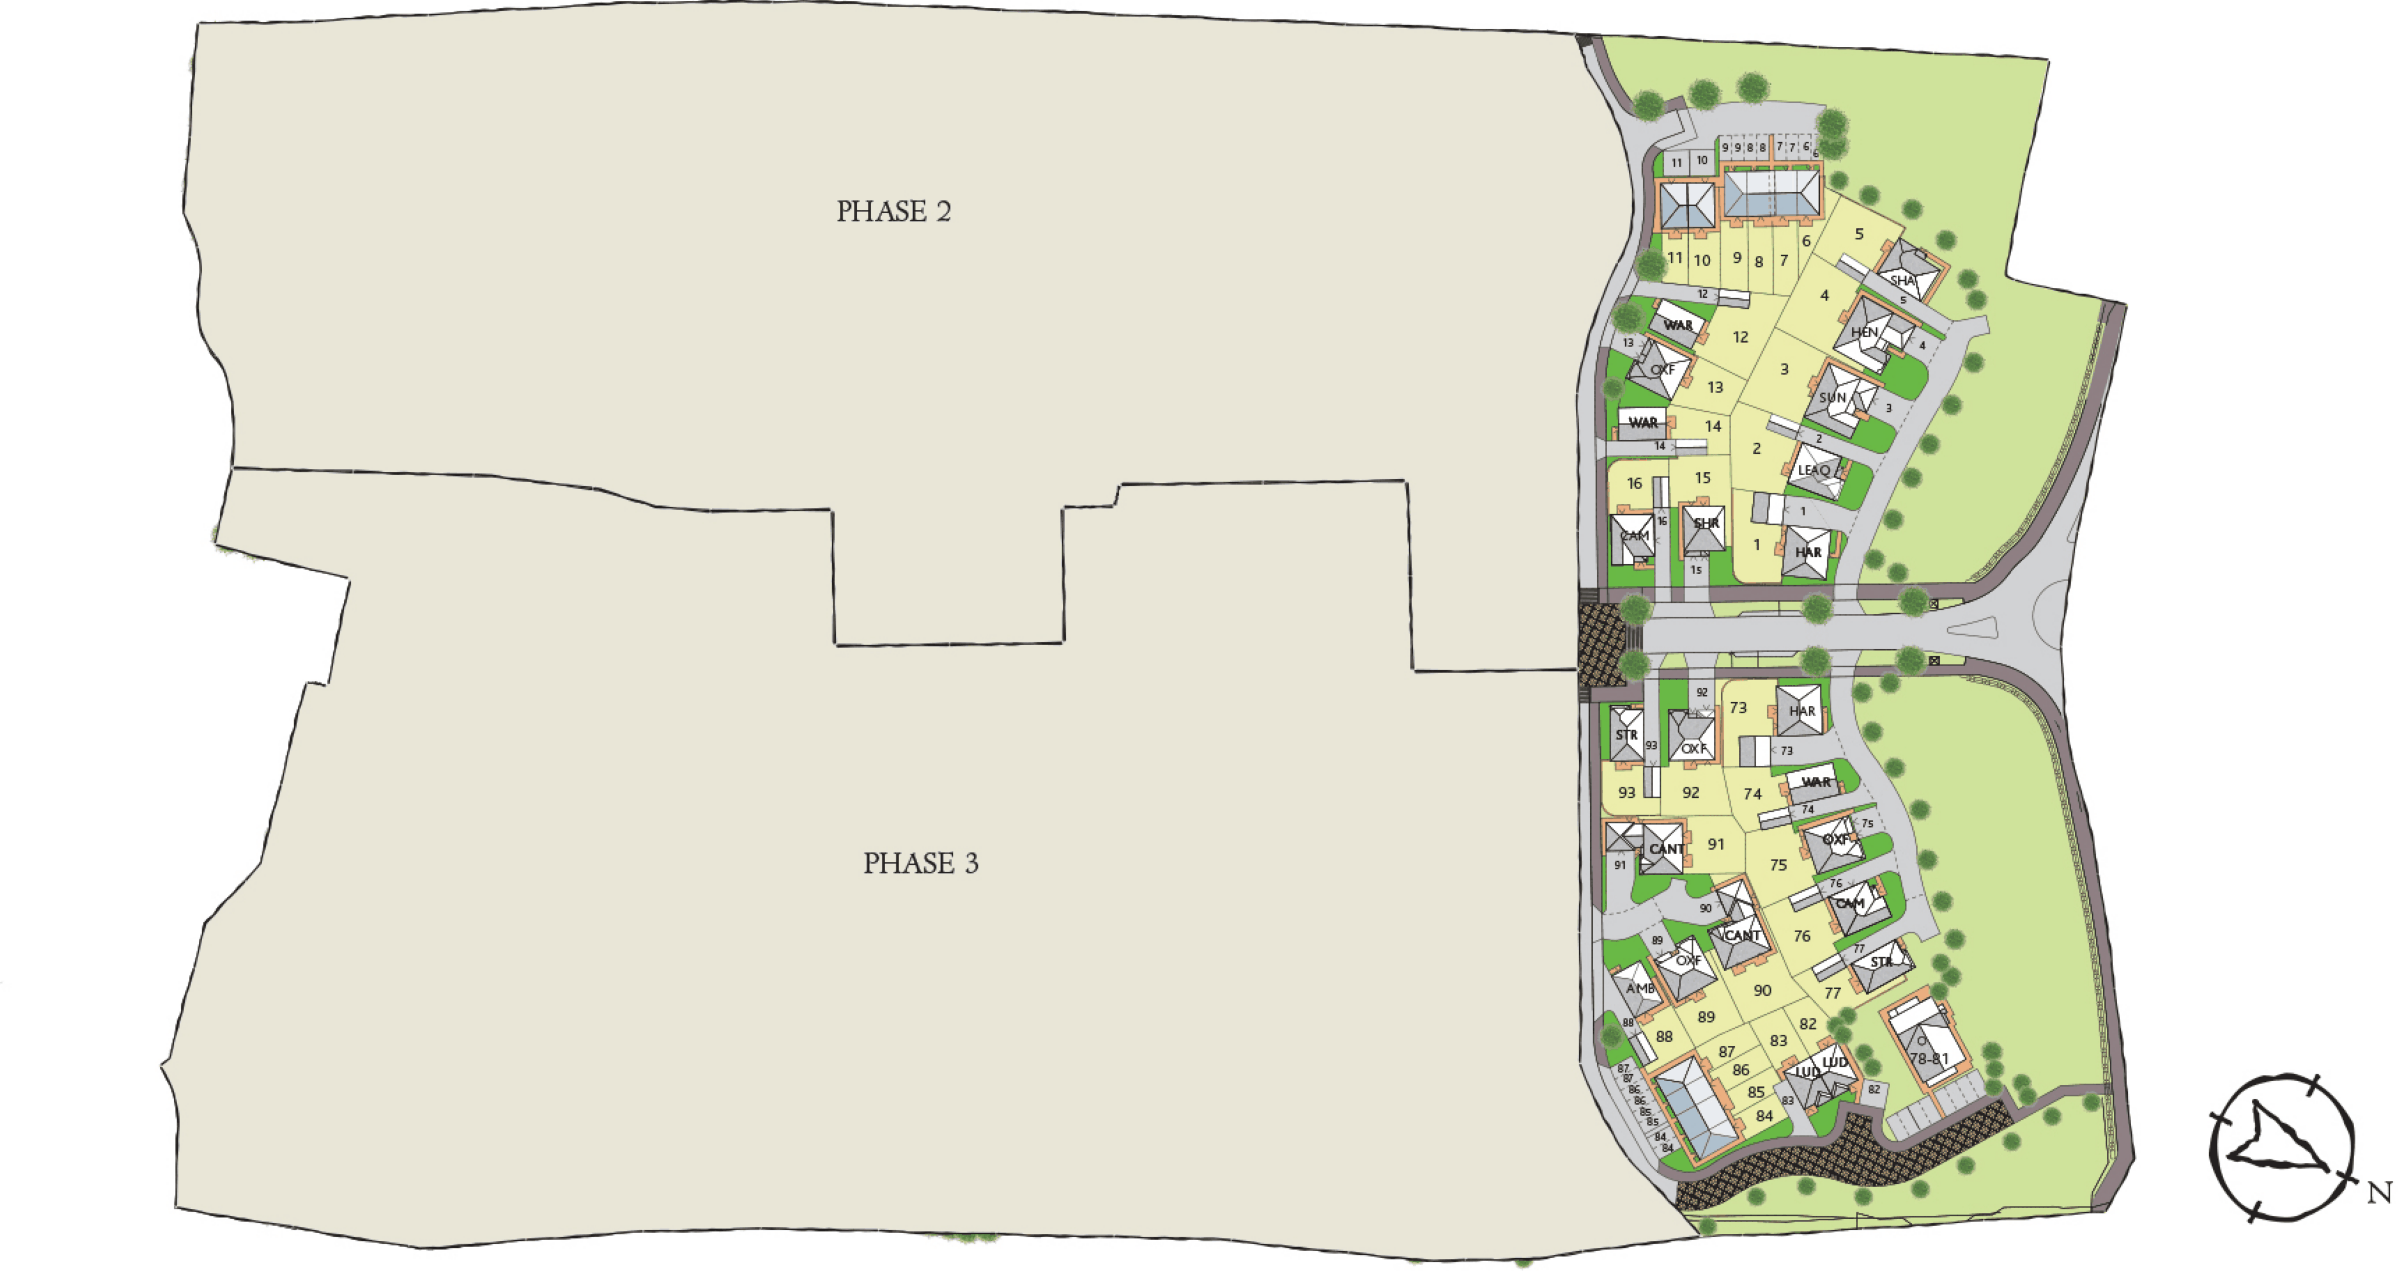 interactive-site-map-1088v2 plan